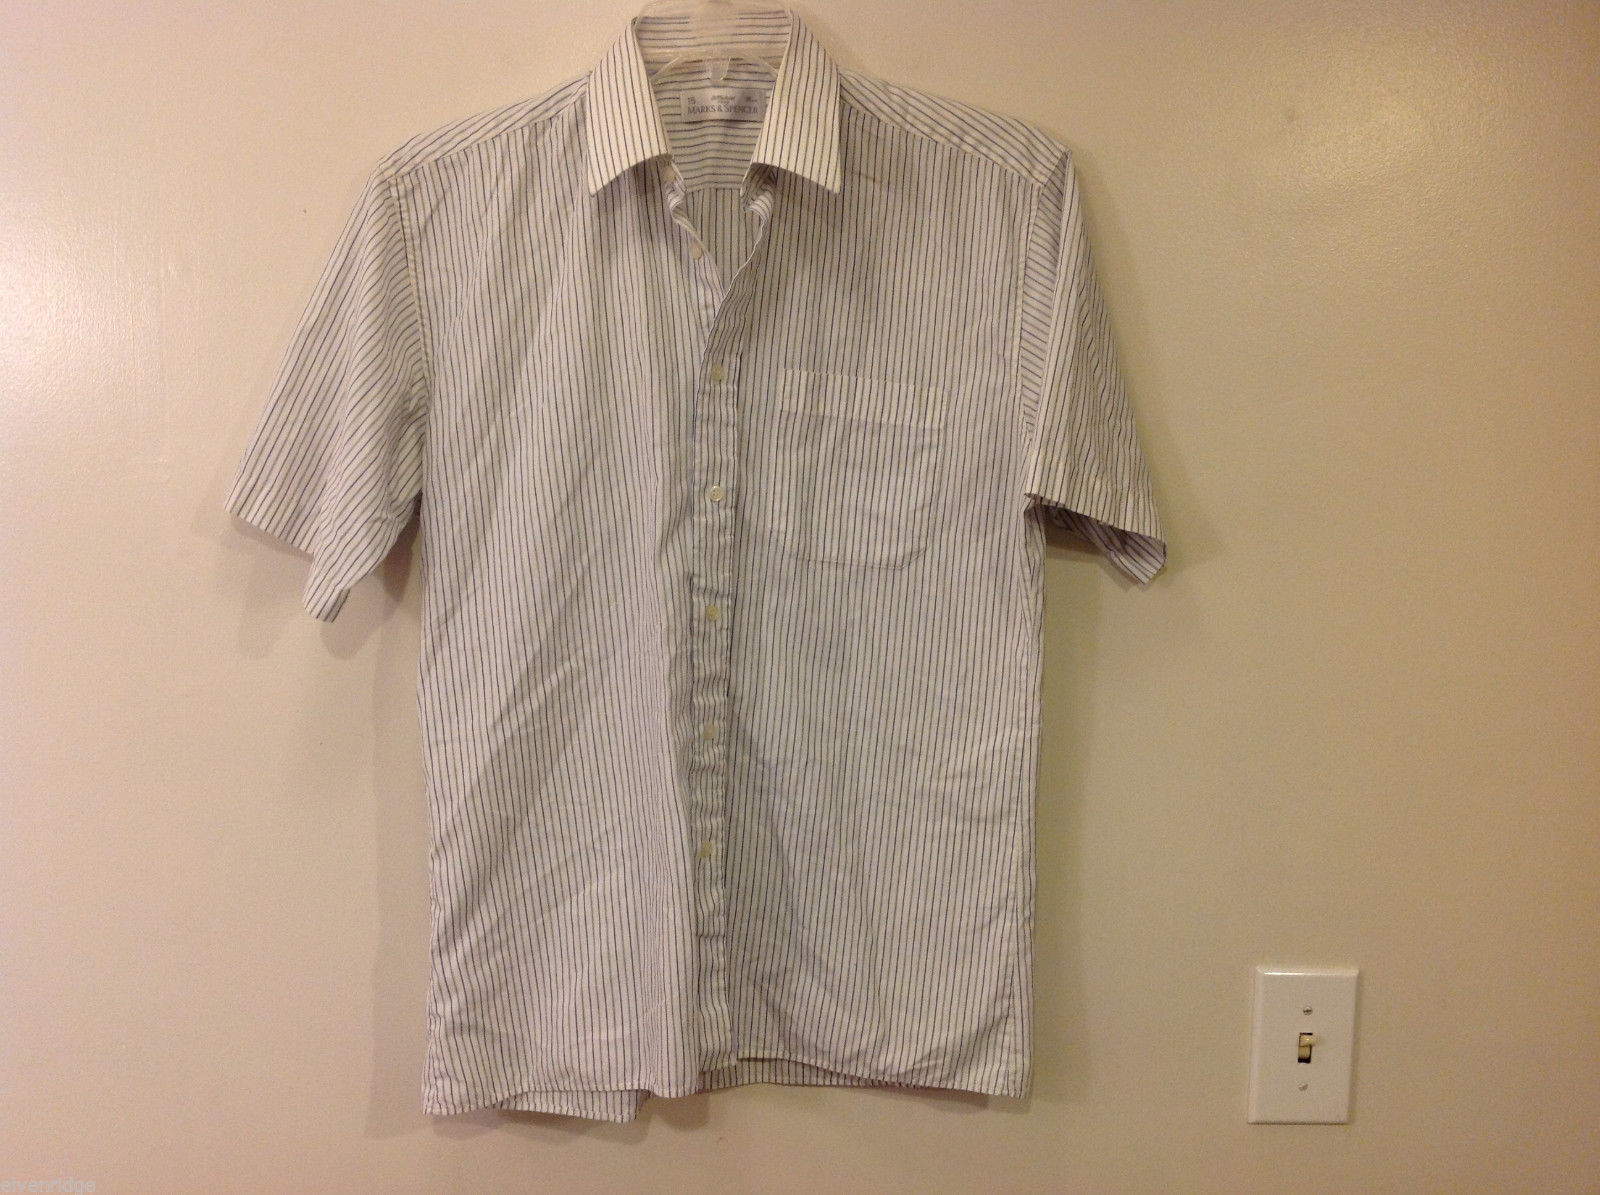 Marks & Spencer Men's Size L Shirt White Button-Down Blue Stripes Short Sleeves